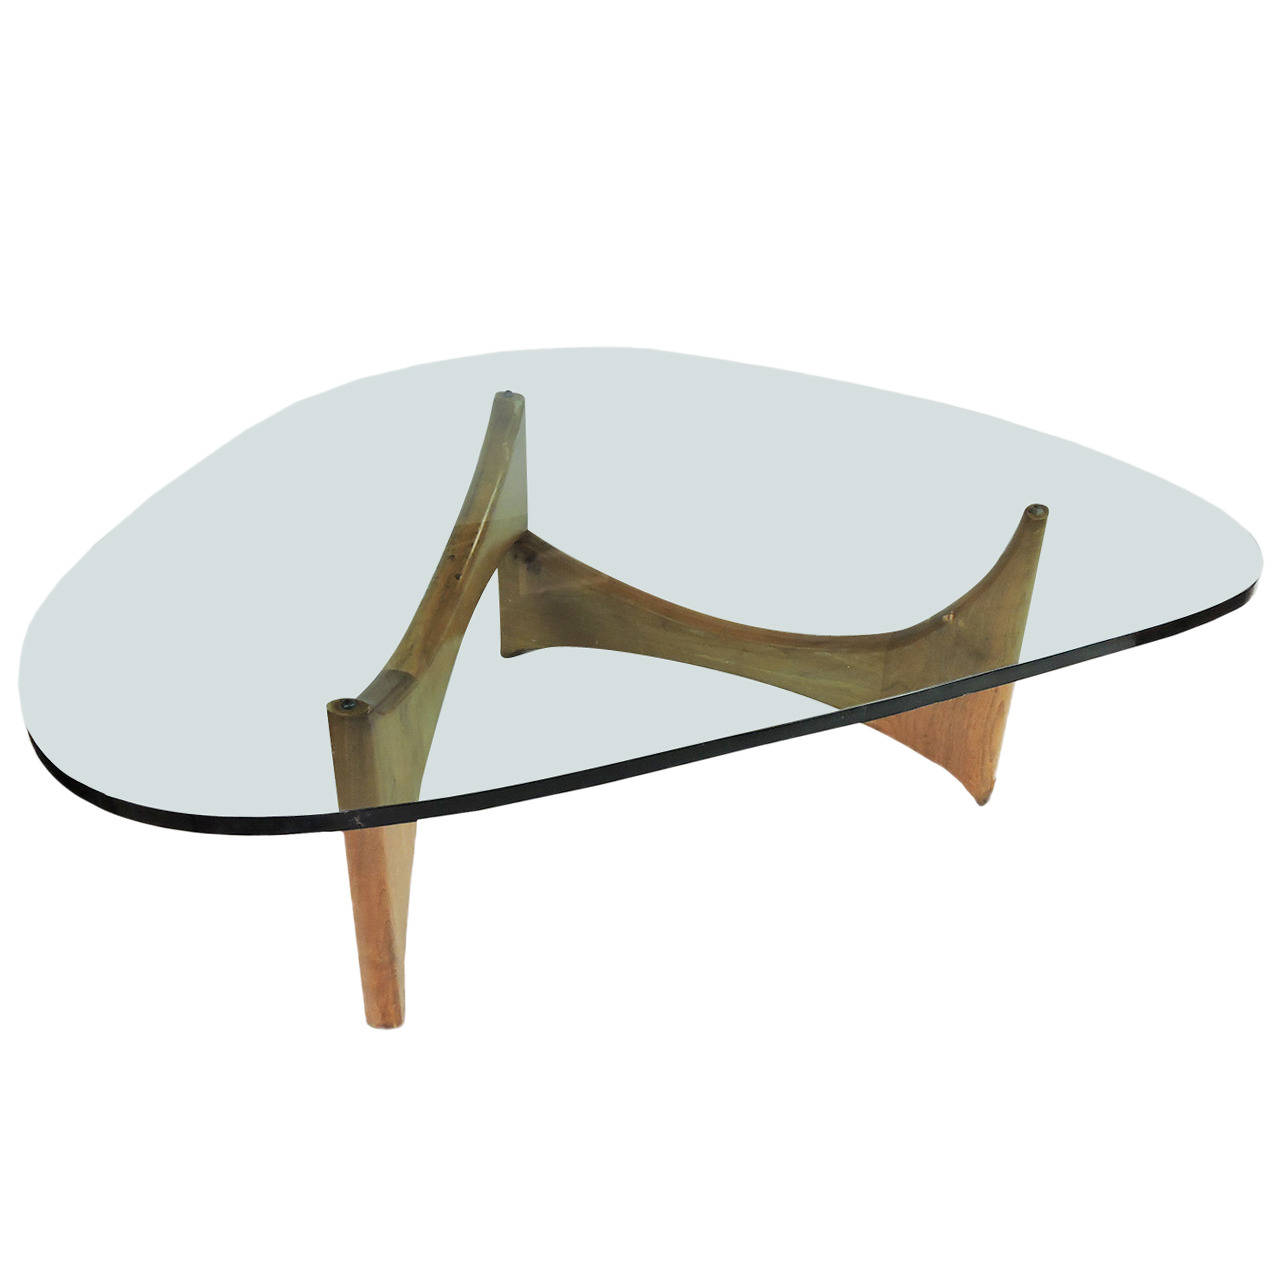 Wood Modern Coffee Table Modern Coffee Table Glass And Wood Interior Exterior Doors